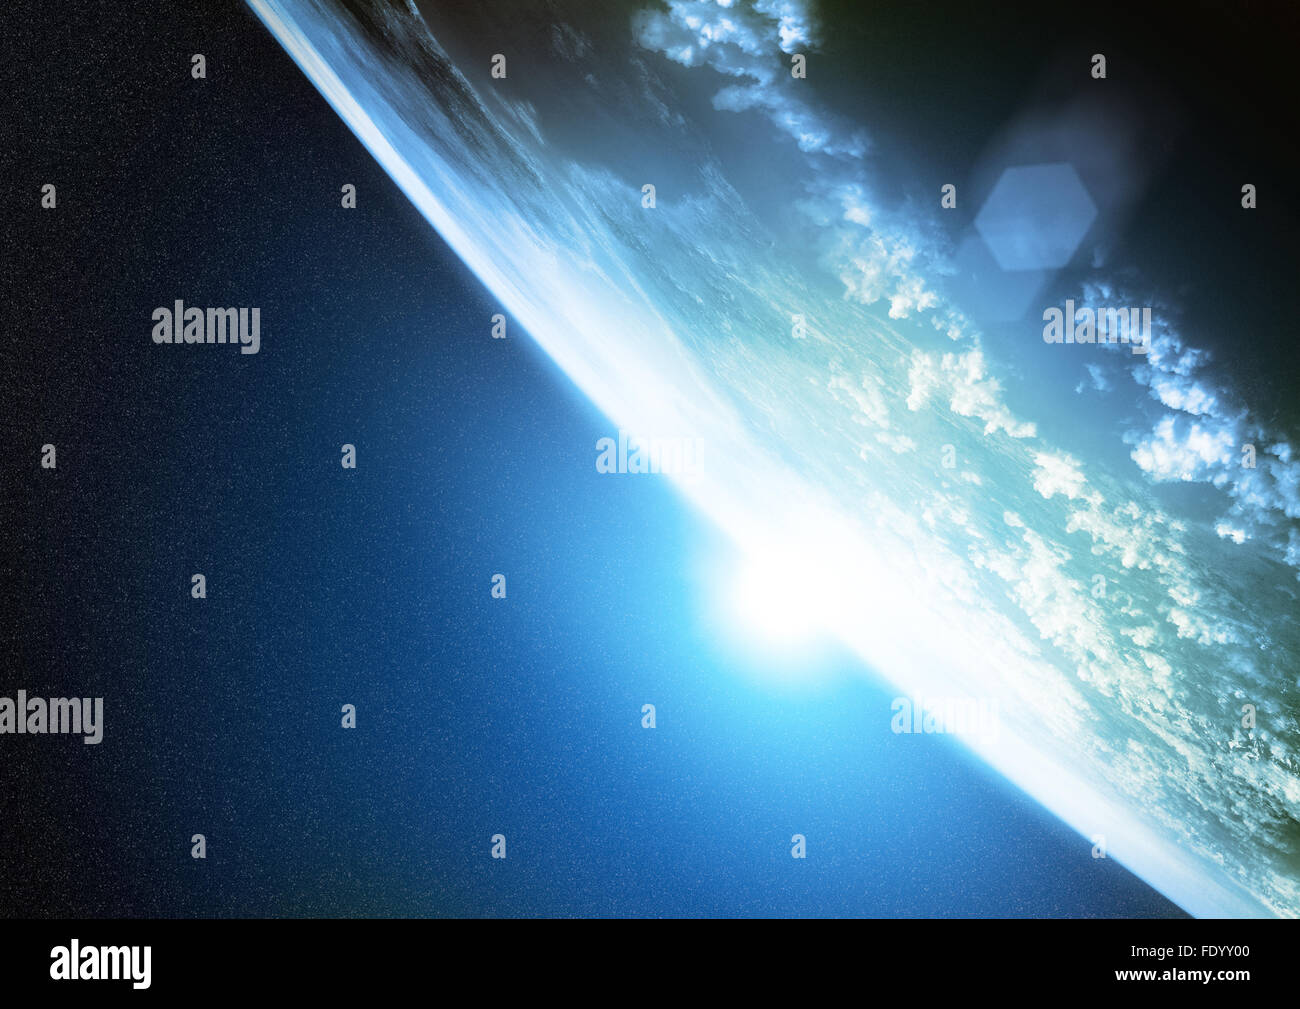 Planet Earth. Illustration of our planet as seen from space. - Stock Image